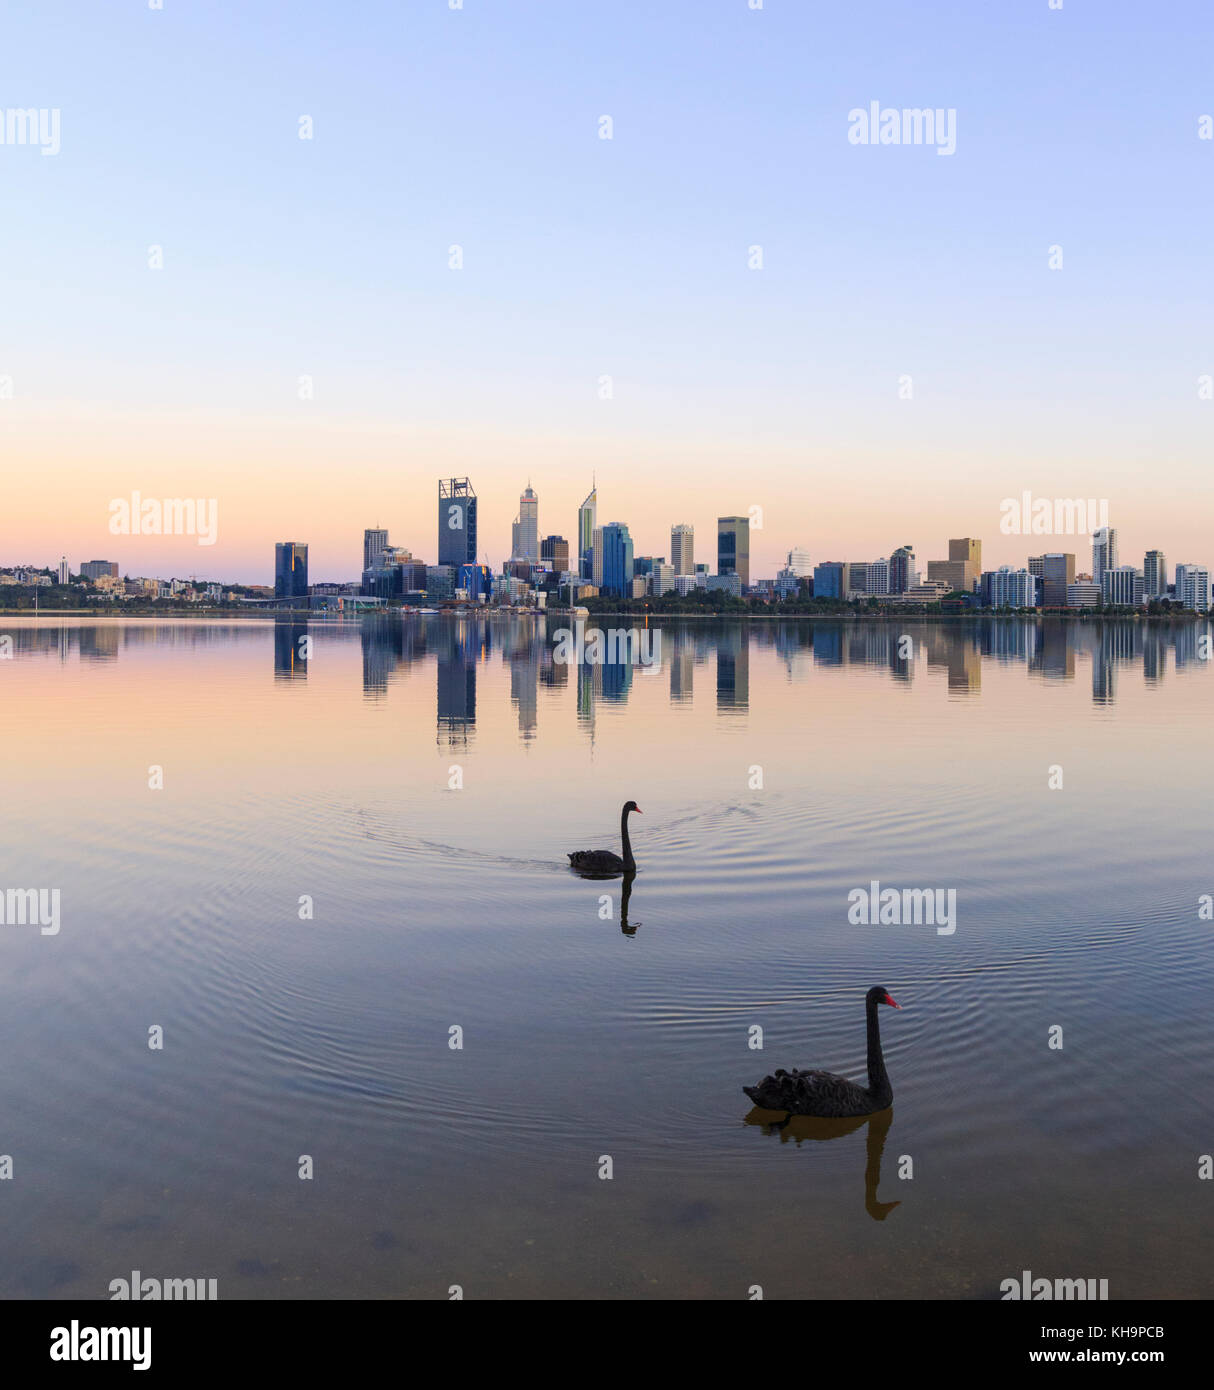 Two black swans on the Swan River at sunrise. - Stock Image